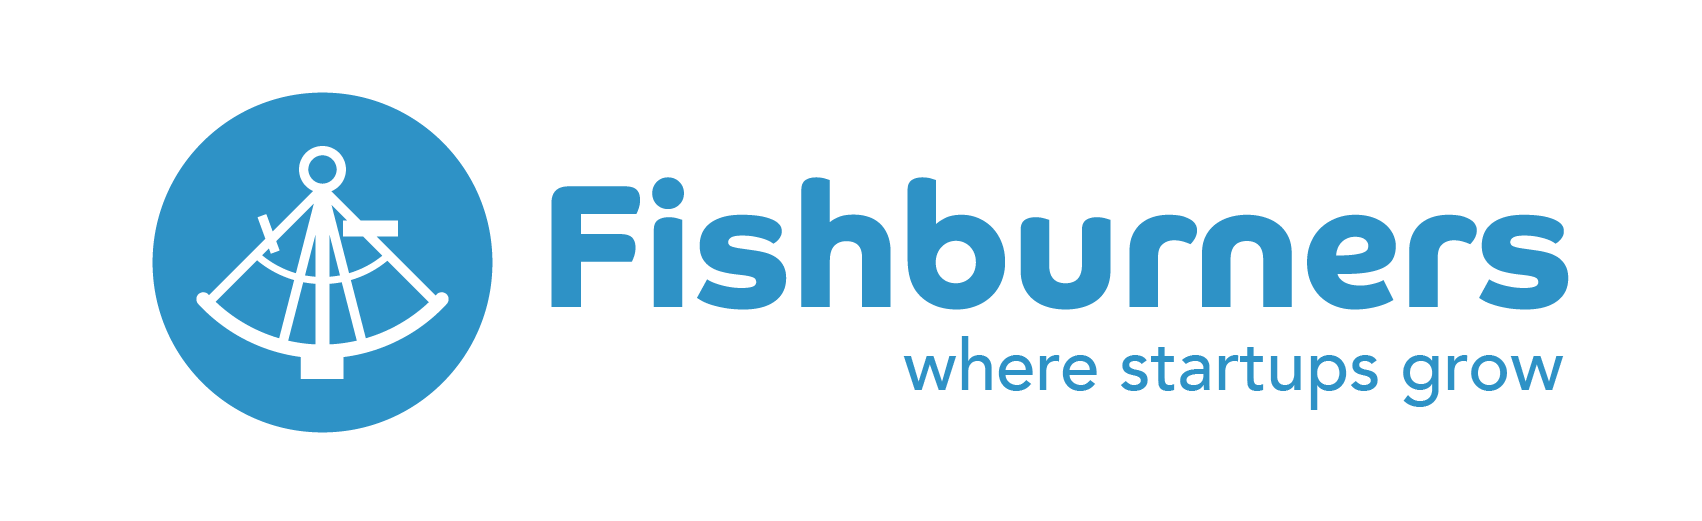 fishburners logo